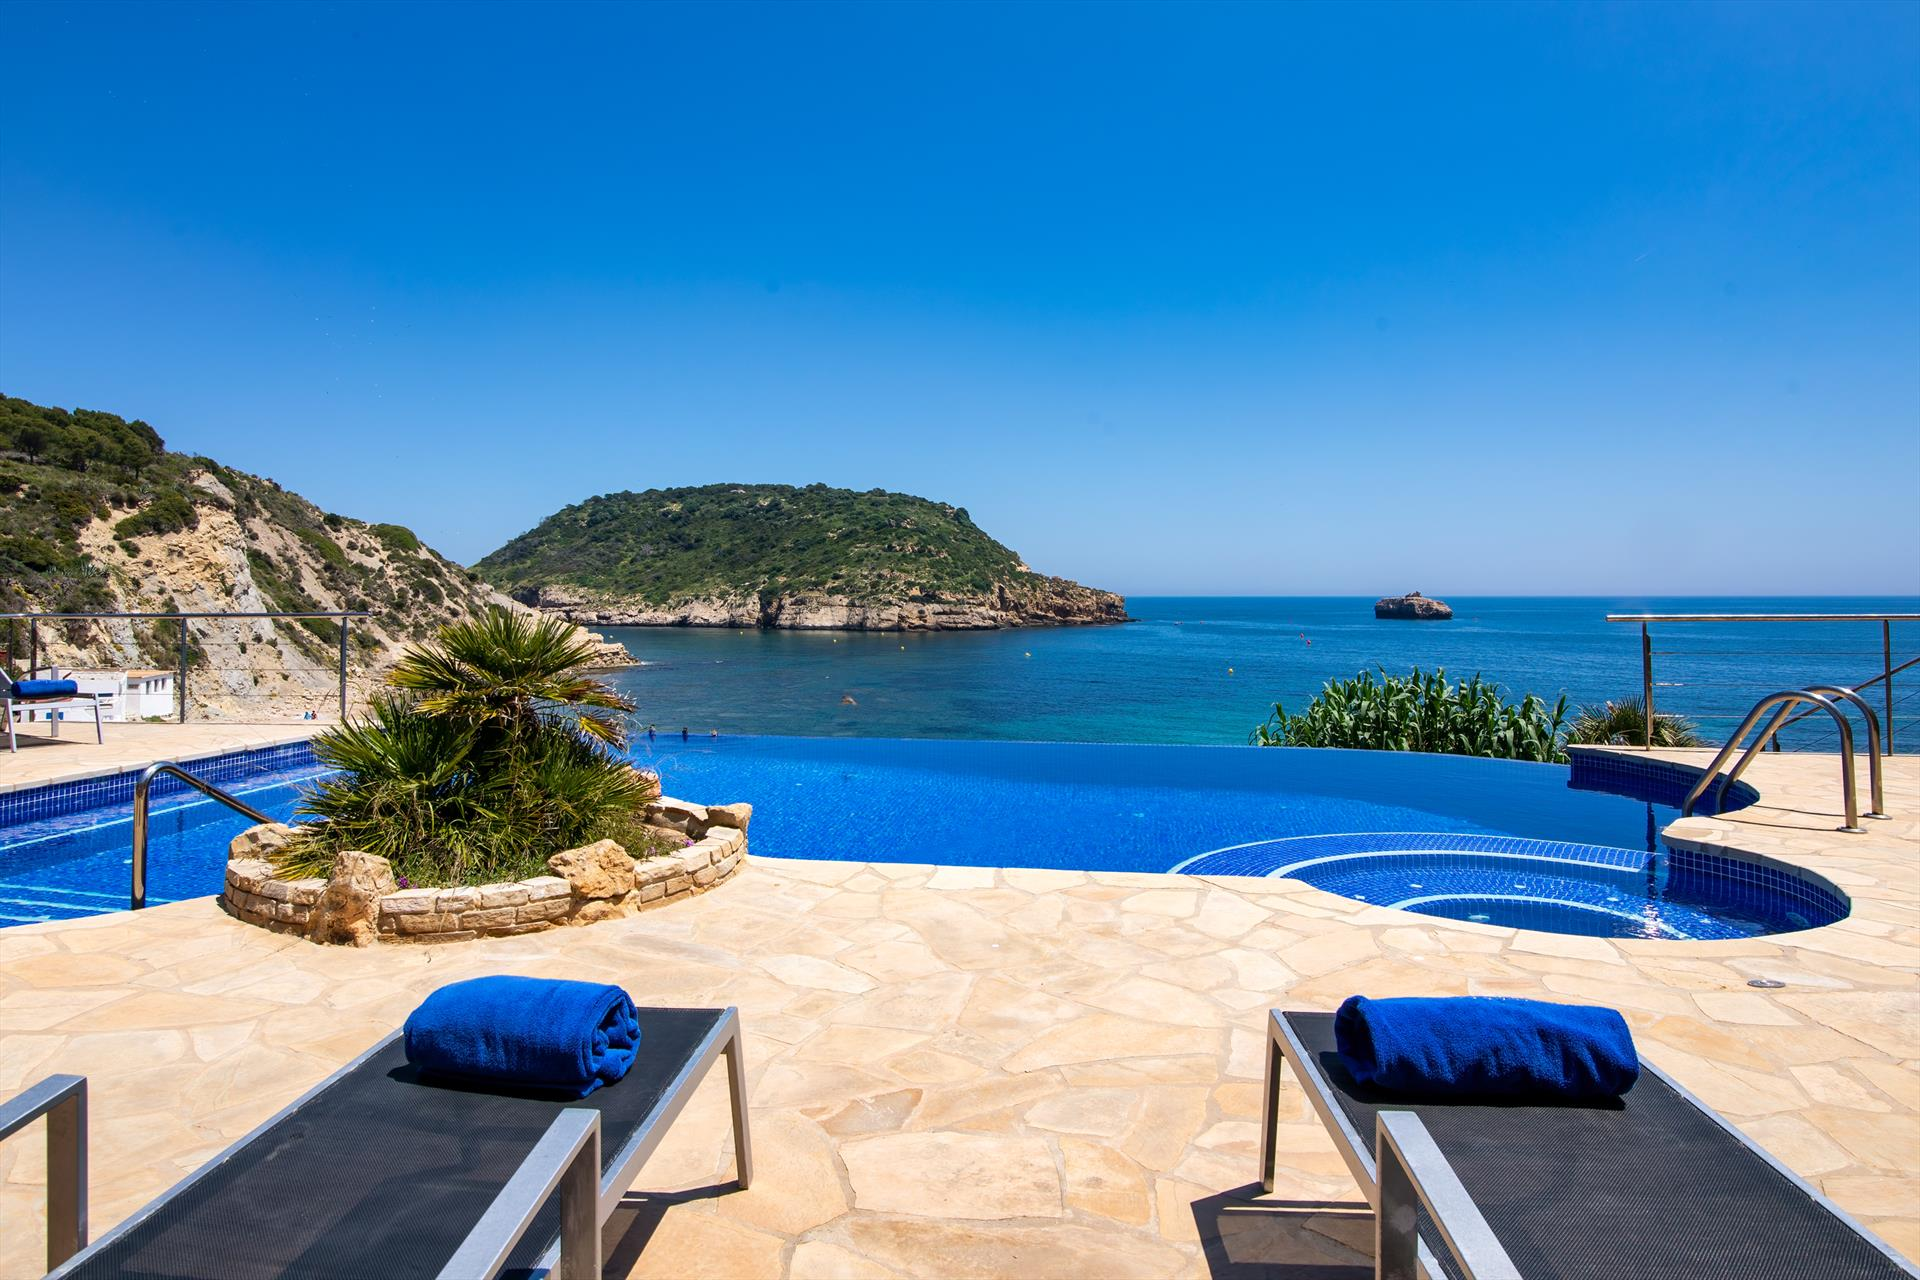 Casa Alicia10, Villa with private pool in Javea, on the Costa Blanca, Spain for 10 persons. The villa is situated in a hilly, wooded and.....